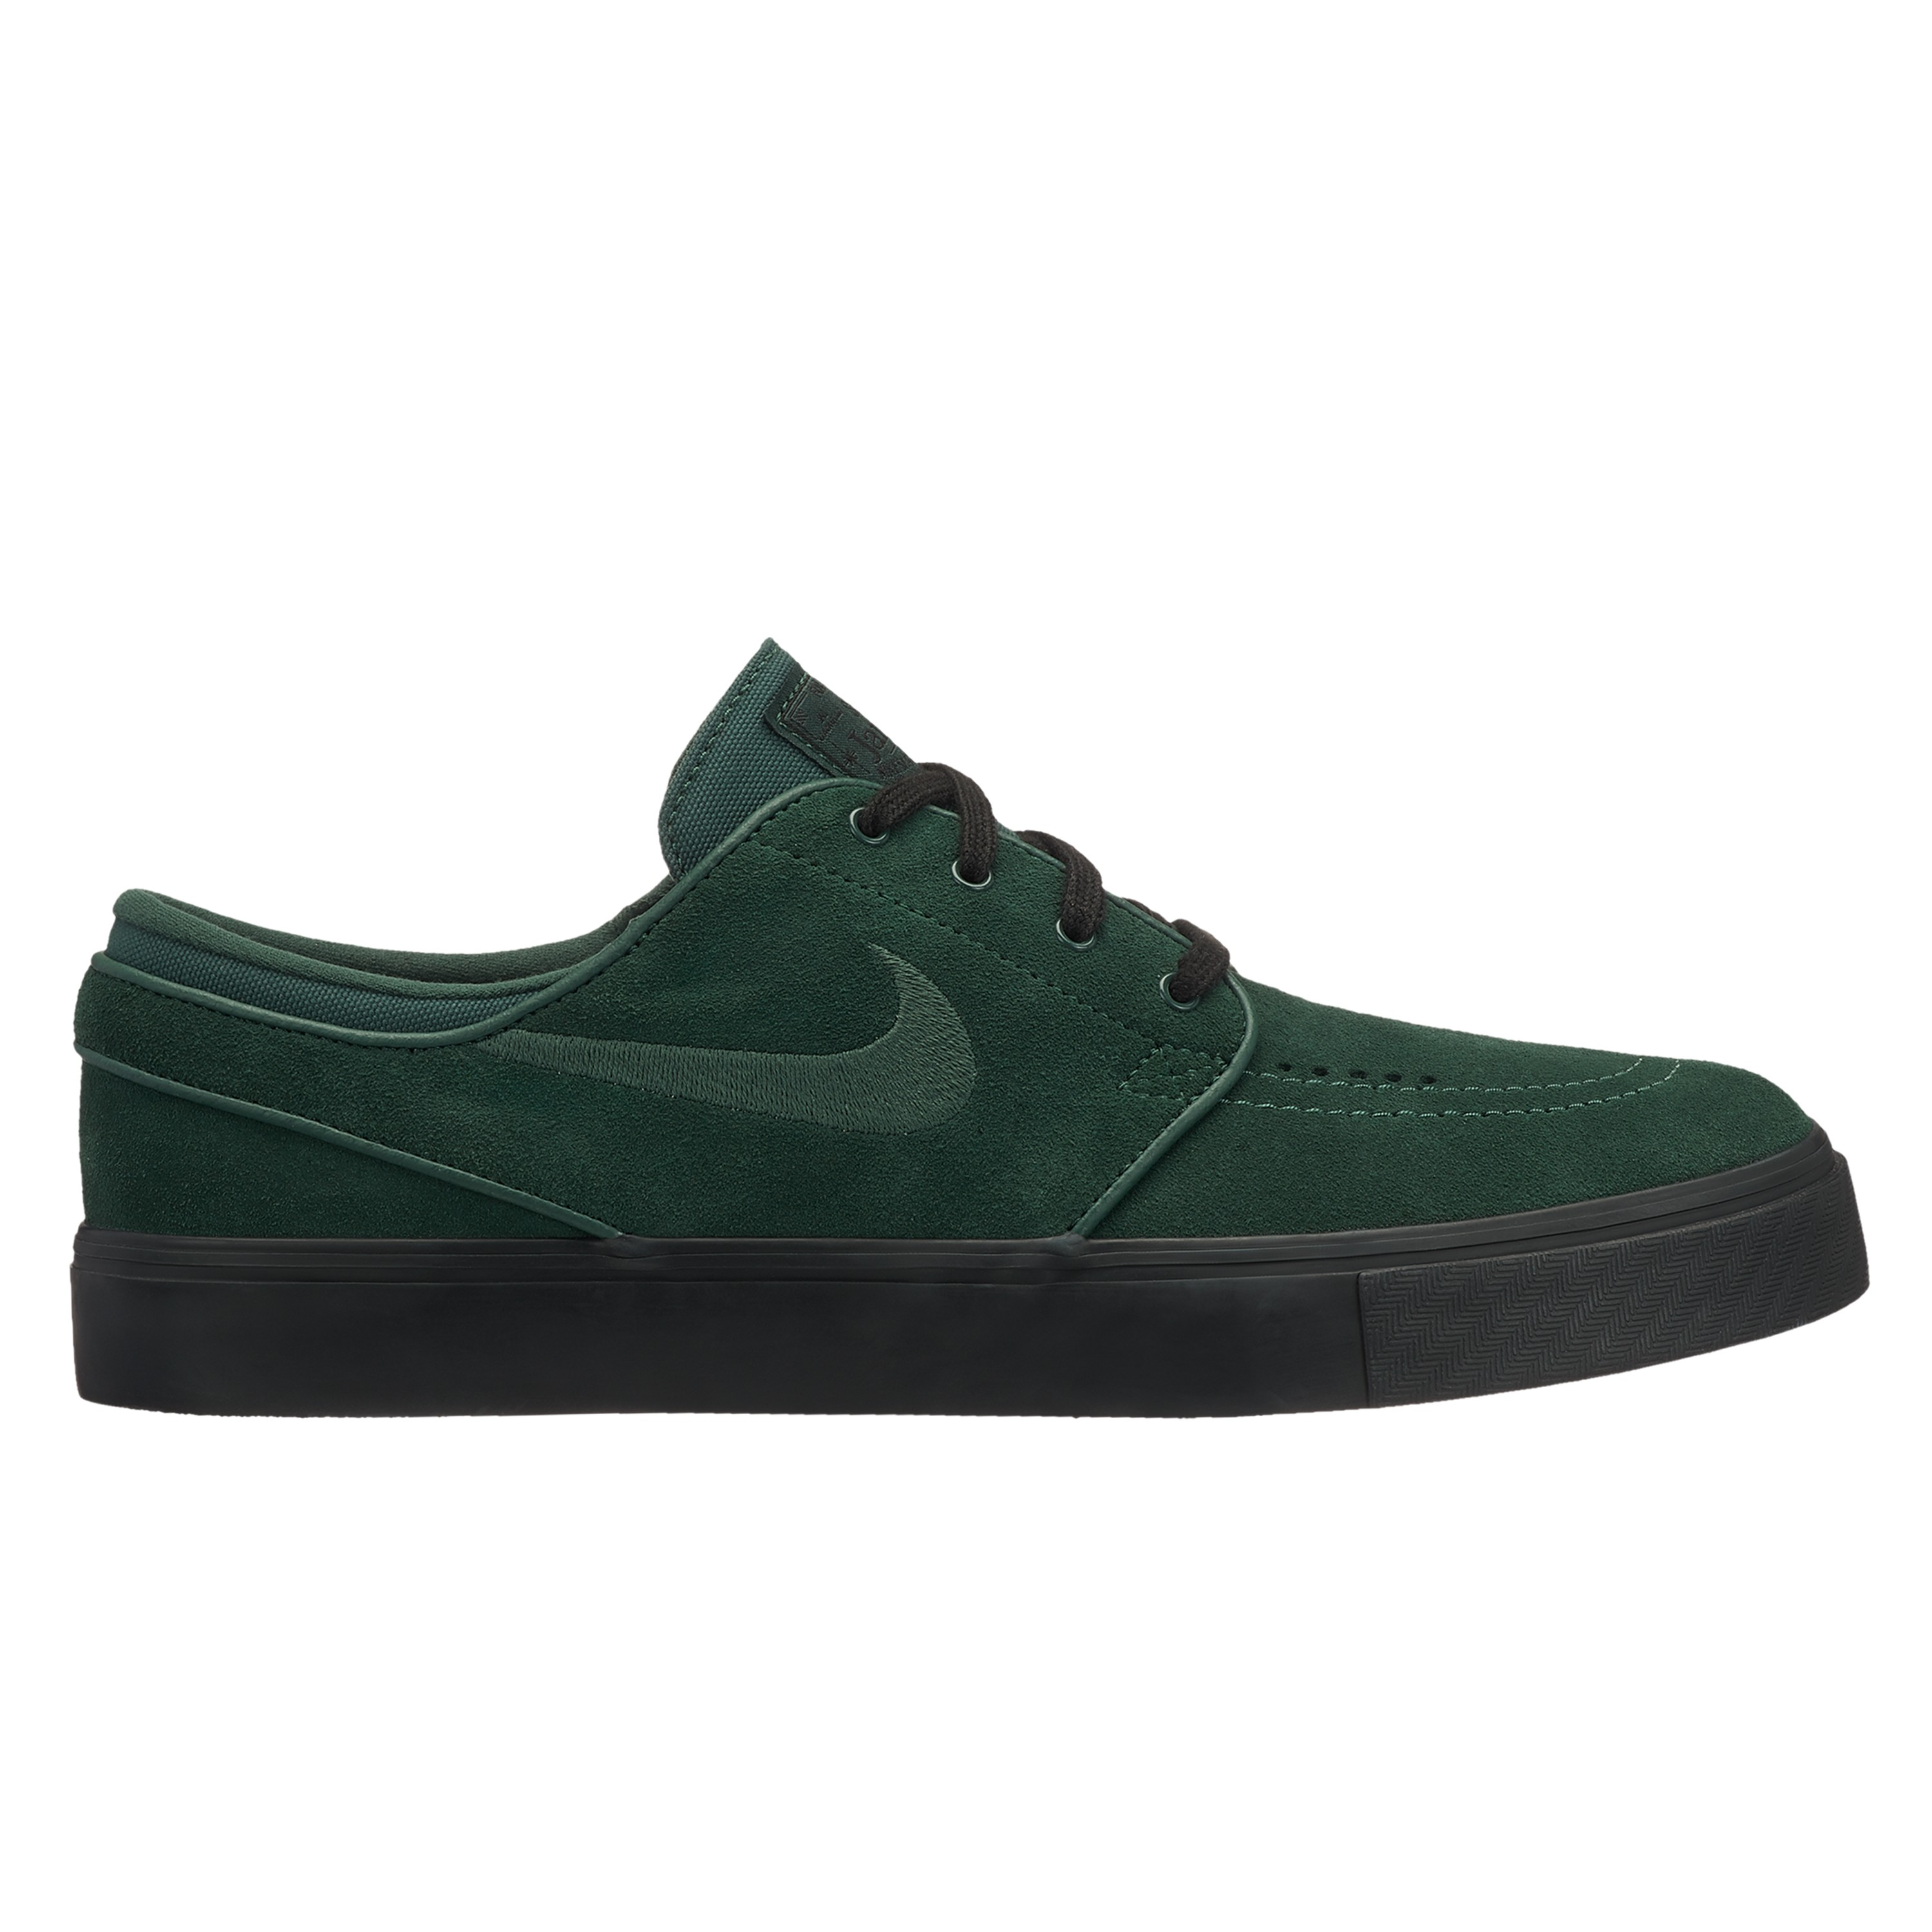 Describir heredar Reparador  Nike SB Zoom Stefan Janoski (Midnight Green/Midnight Green-Black)  333824-312 - Consortium.